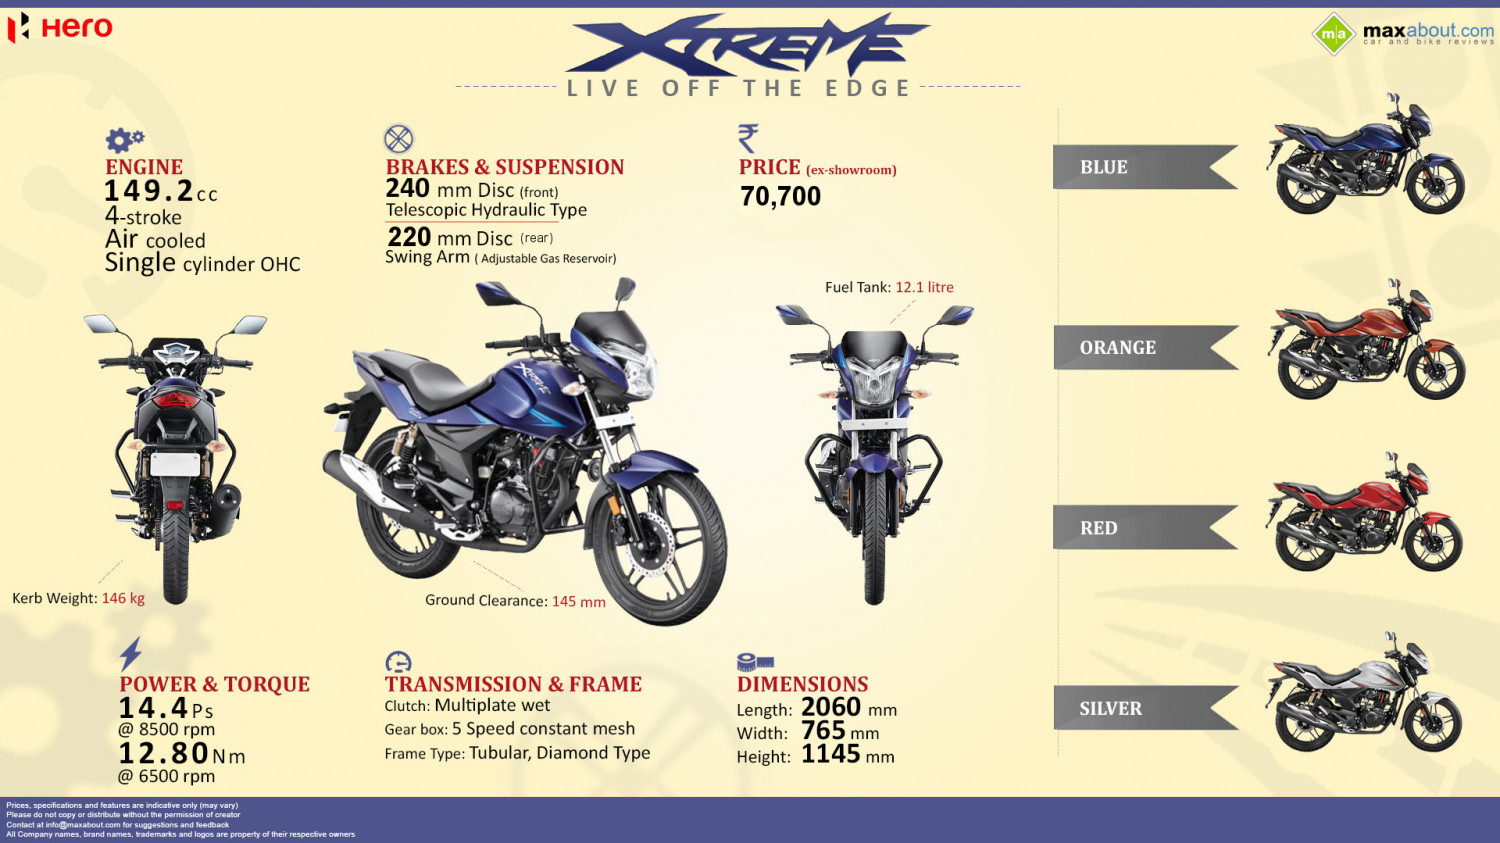 2014 Hero Xtreme - Live off the Edge! Infographic